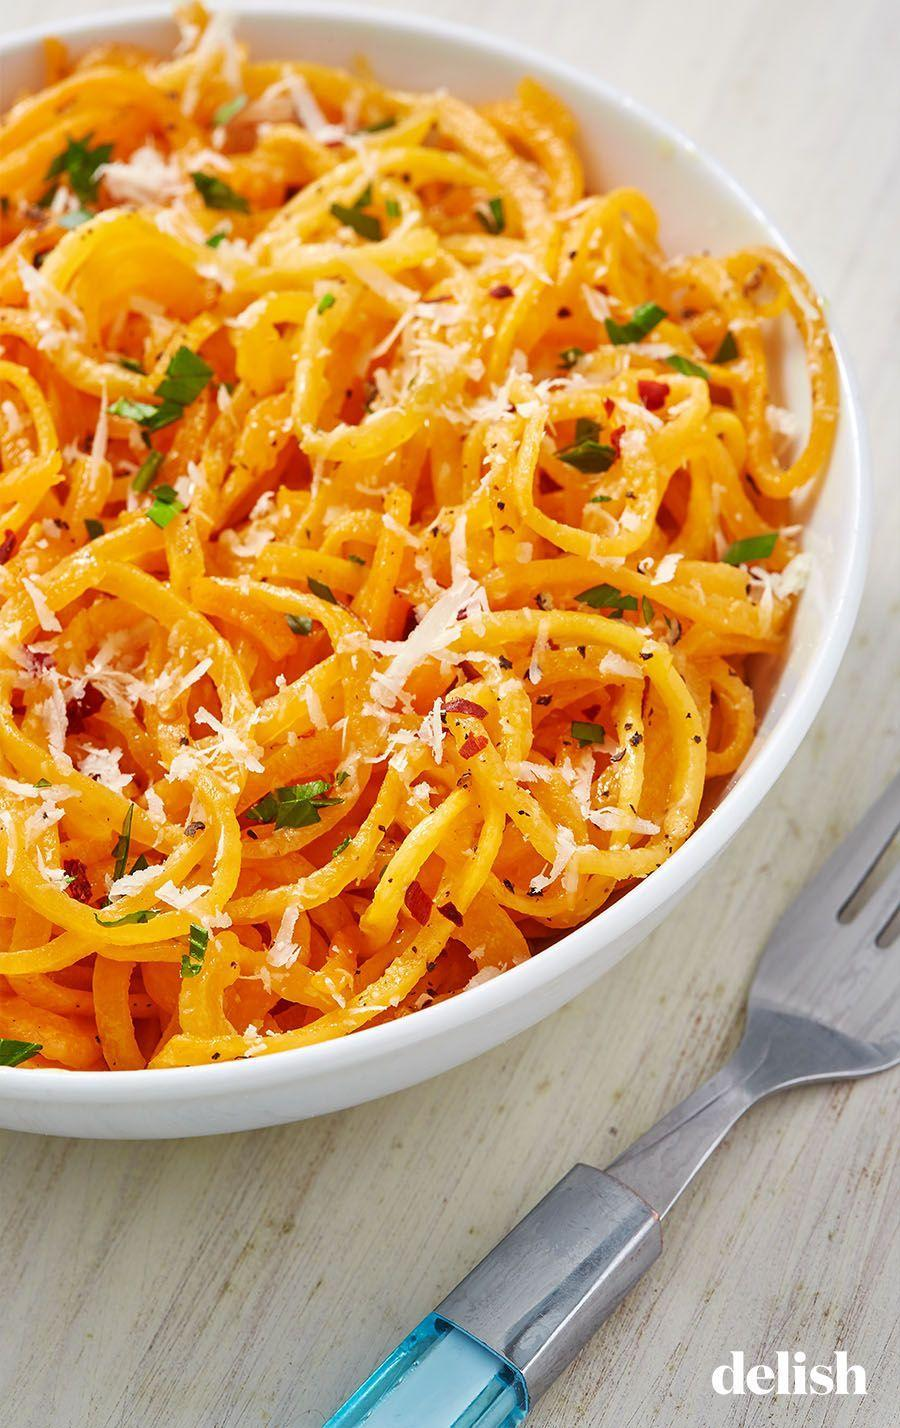 "<p>All ya need is a little parmesan and olive oil on top. </p><p>Get the recipe from <a href=""https://www.delish.com/cooking/recipe-ideas/a28497932/butternut-squash-noodles-recipe/"" rel=""nofollow noopener"" target=""_blank"" data-ylk=""slk:Delish"" class=""link rapid-noclick-resp"">Delish</a>.</p>"